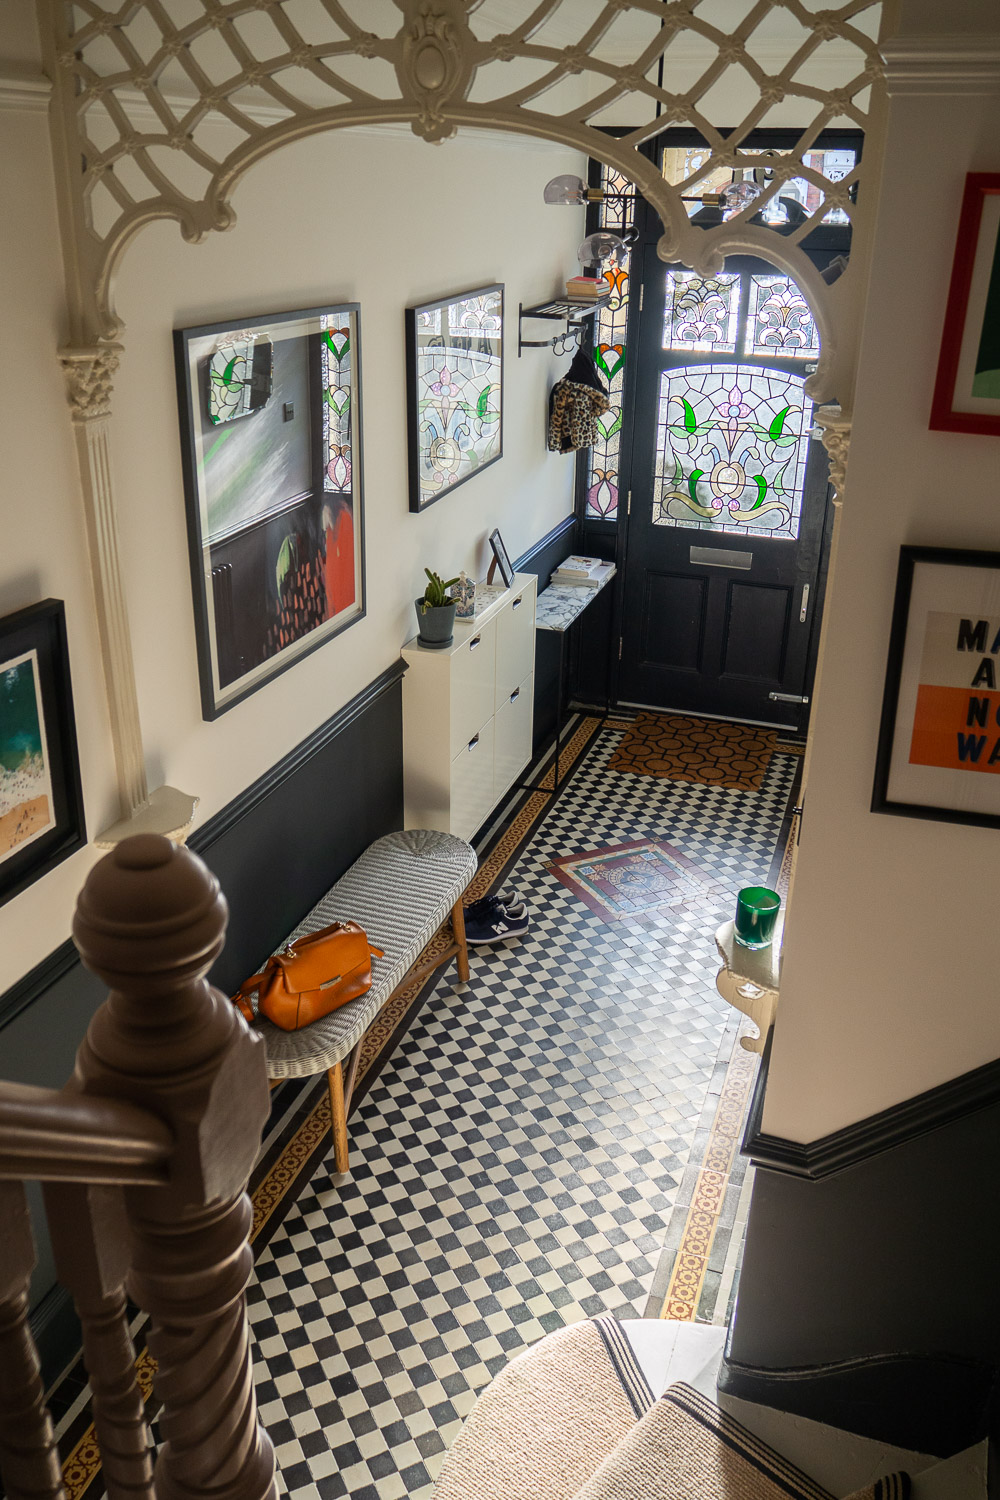 A view of The Frugality's Hallway Tiles and front door from the staircase.